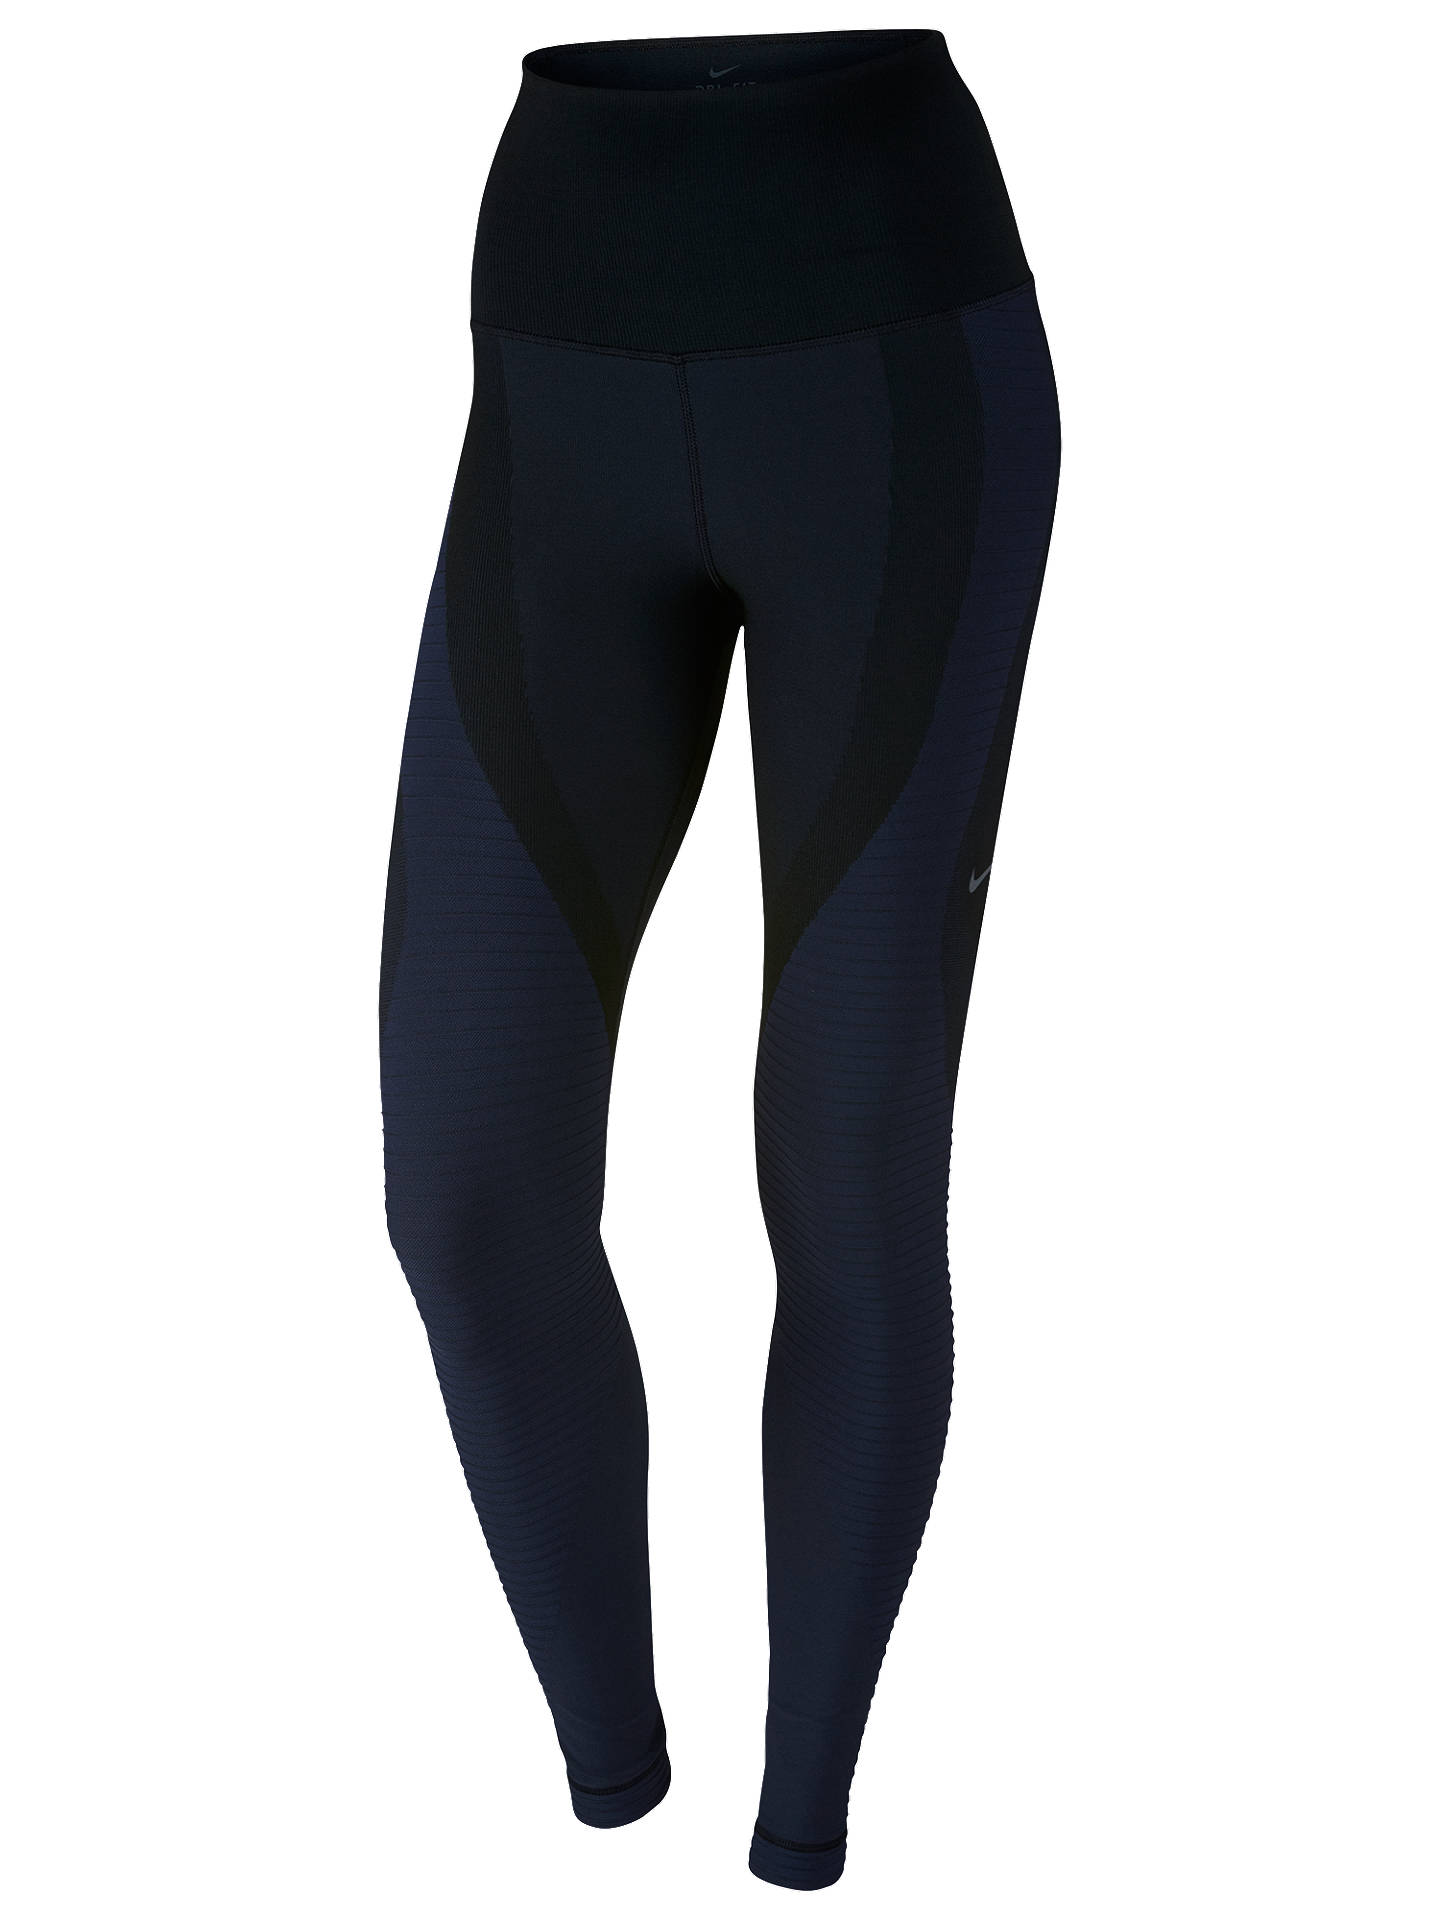 d7c49cf3e9 Buy Nike Zoned Sculpt Training Tights, Black/Obsidian, XS Online at  johnlewis.